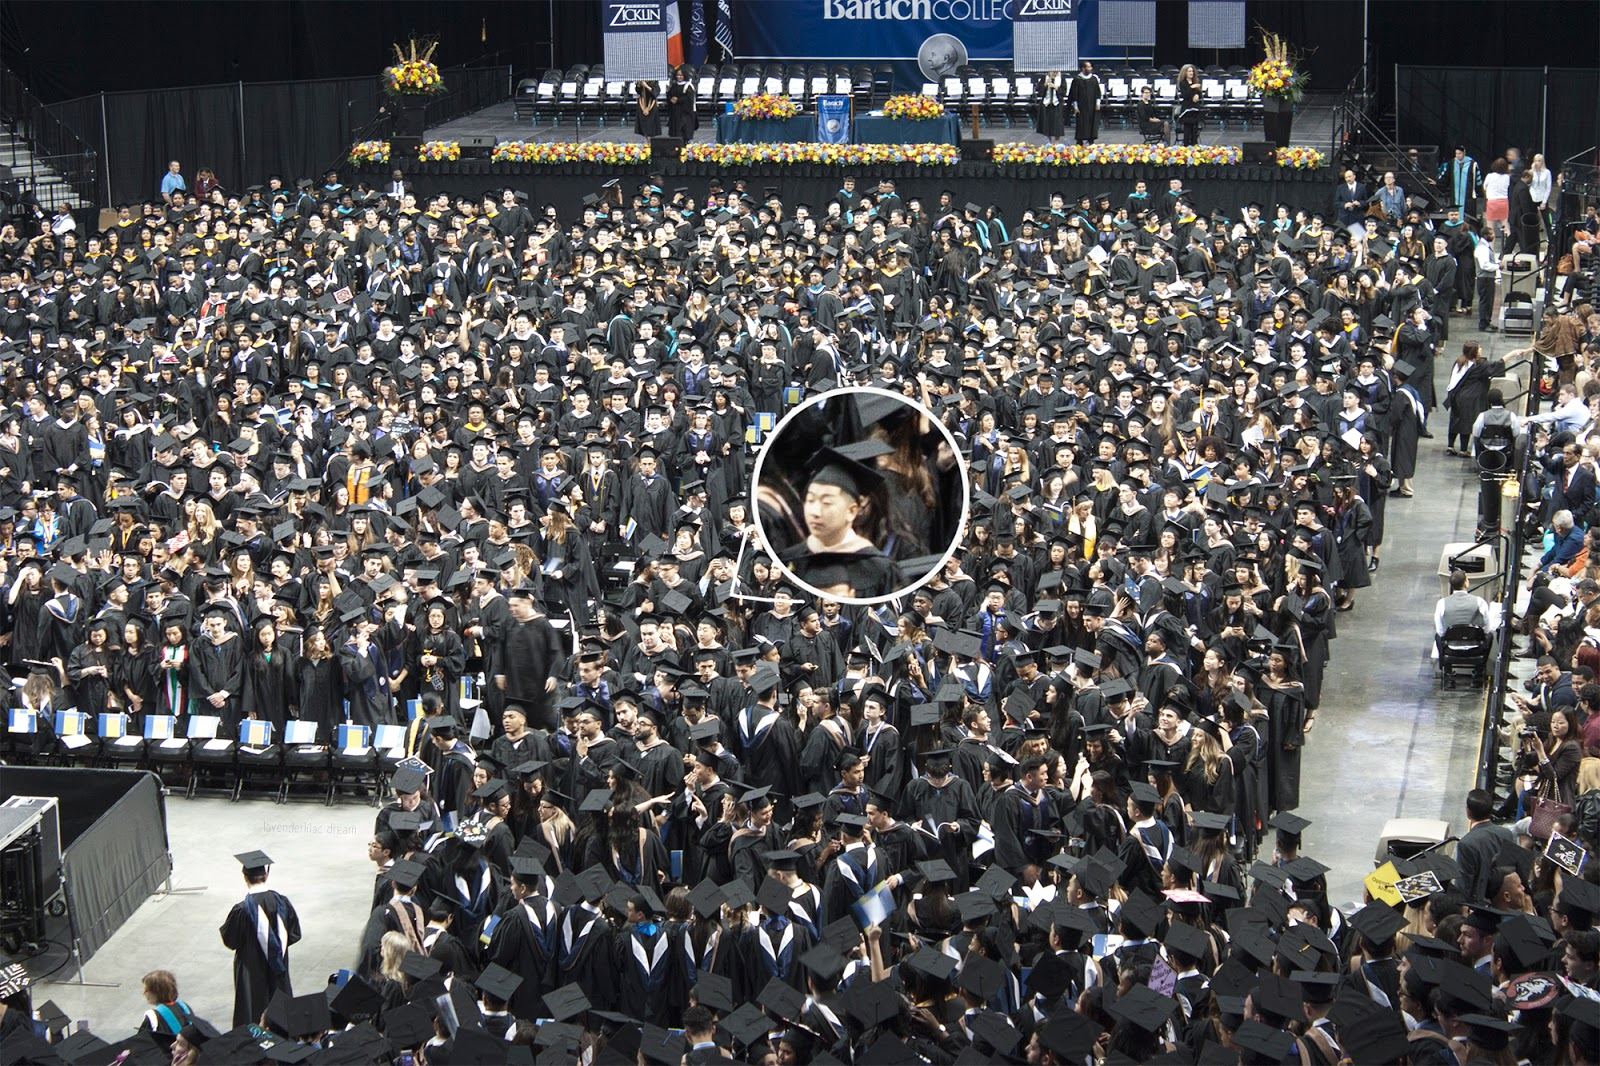 Baruch College, Barclays Center, Barclays Center inside, 2015 Commencement, undergraduate, graduation, New York